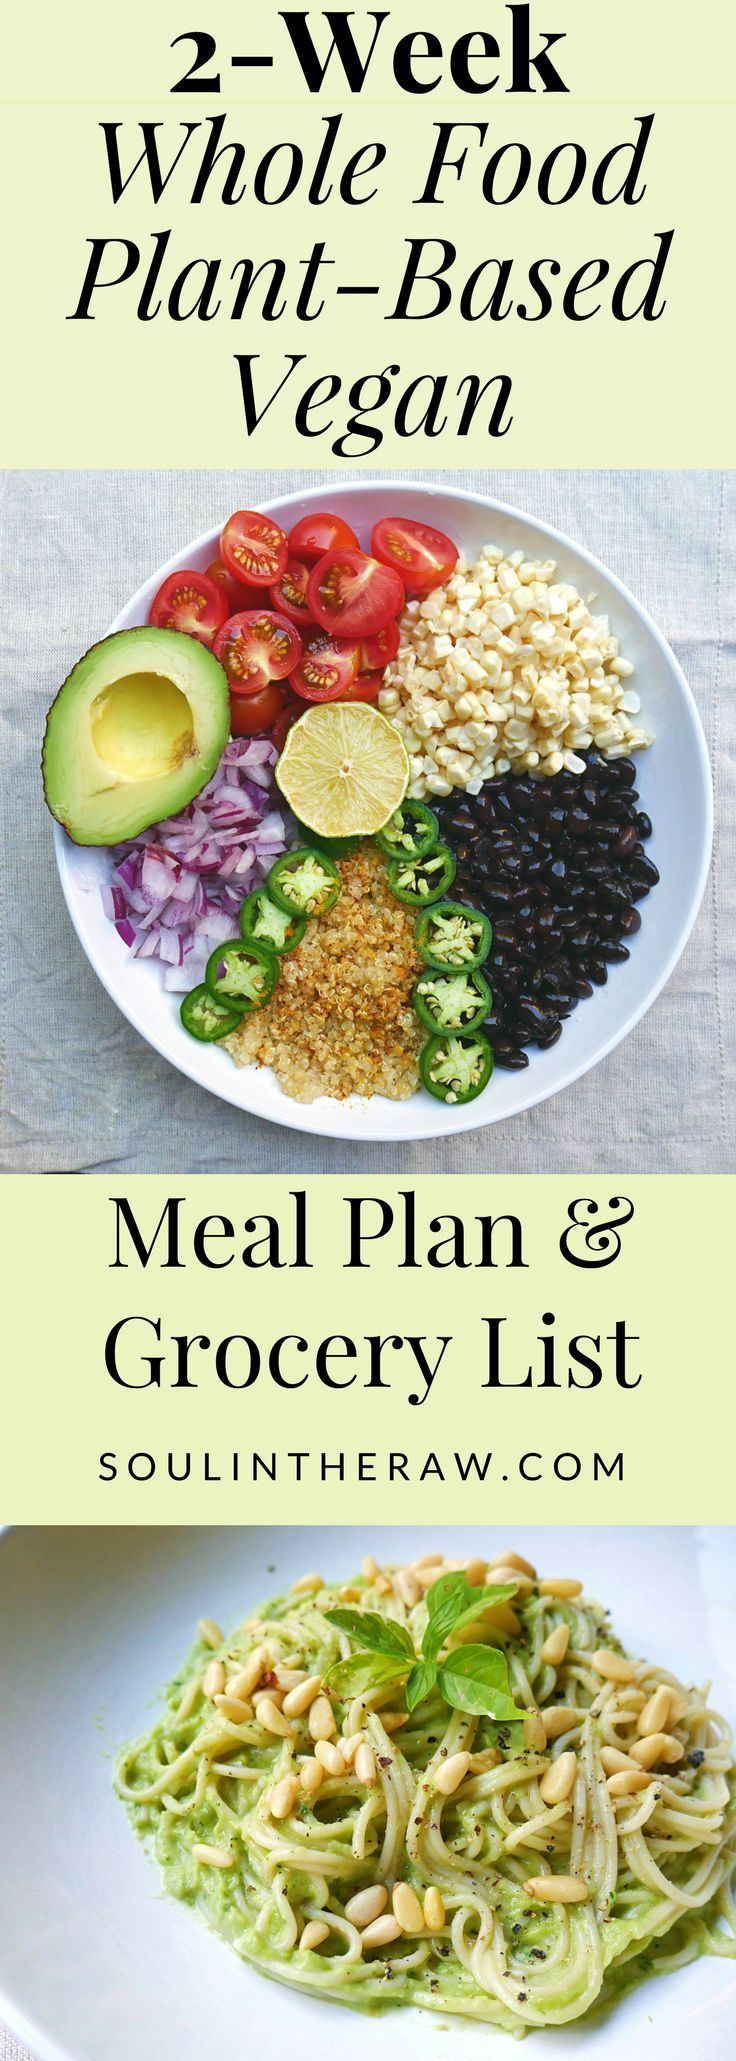 This amazing 2 week vegan meal plan is packed with delicious whole this amazing 2 week vegan meal plan is packed with delicious whole food plant based recipes and vegan recipes for breakfast lunch dinner and snac forumfinder Choice Image